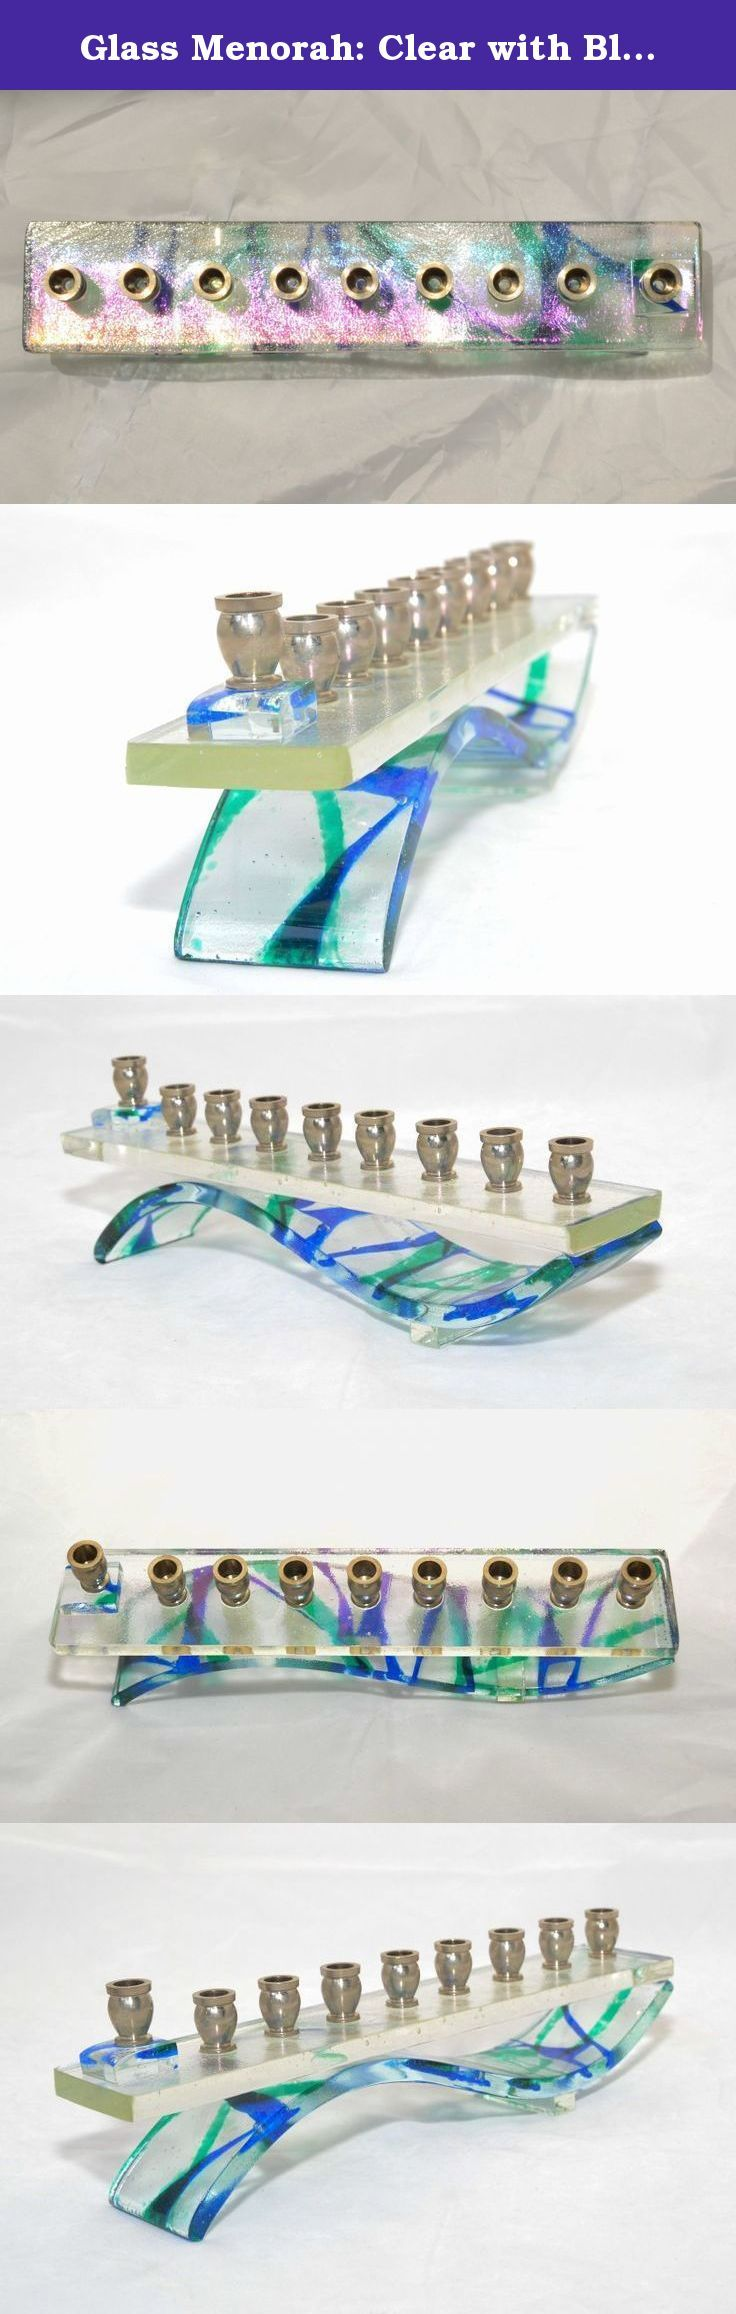 Glass Menorah: Clear with Blue and Green Fractured-Look and Iridescent-Clear Top. Fused glass art menorah. Thick layered wave base, attractive from all sides. Lively green and blue on clear base, infused into a fractured appearance (no, it's not really fractured - it's fused glass). Top is thick eye-candy iridescent clear glass that changes appearance as light around it changes. Heavy nickel plated metal candle cups.